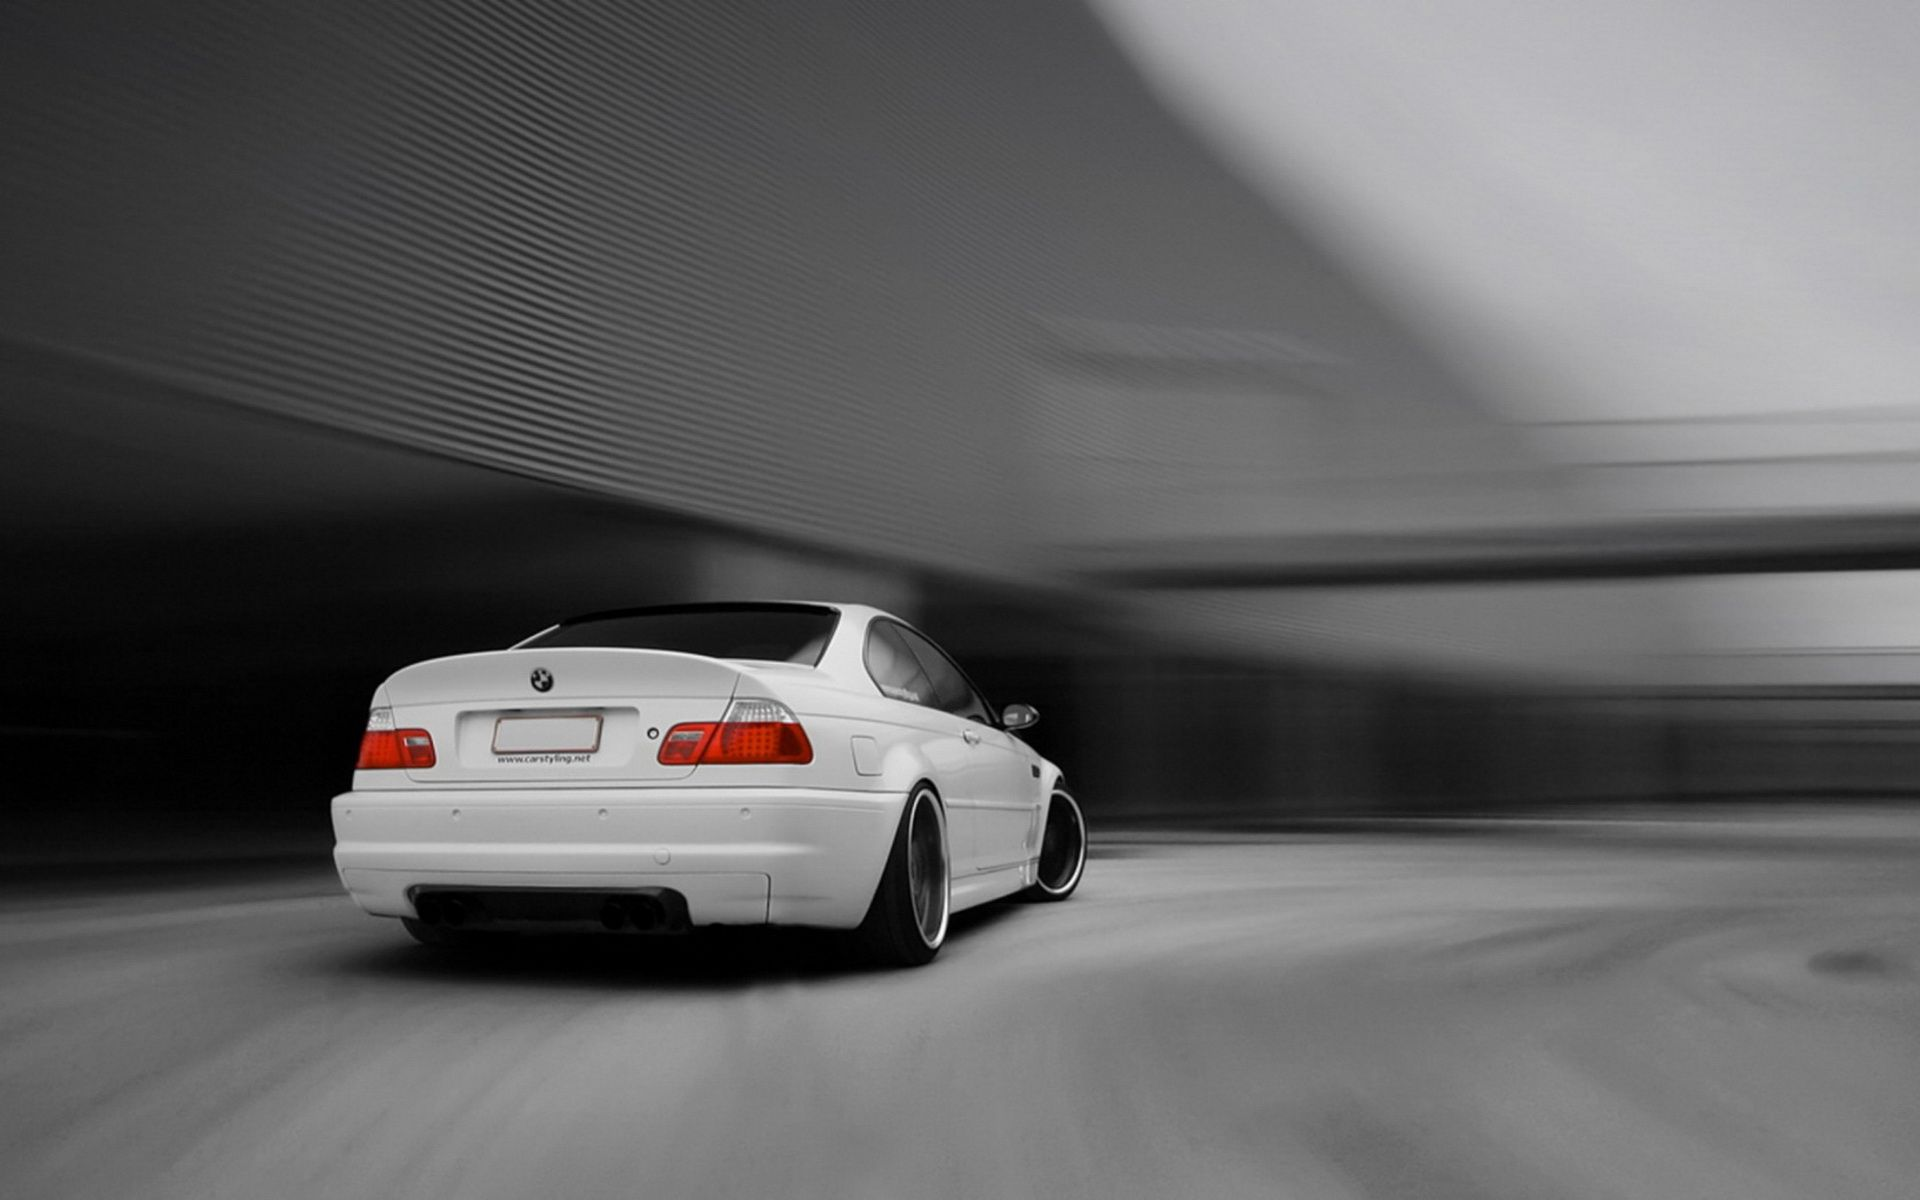 Bmw E46 M3 Wallpaper_1650